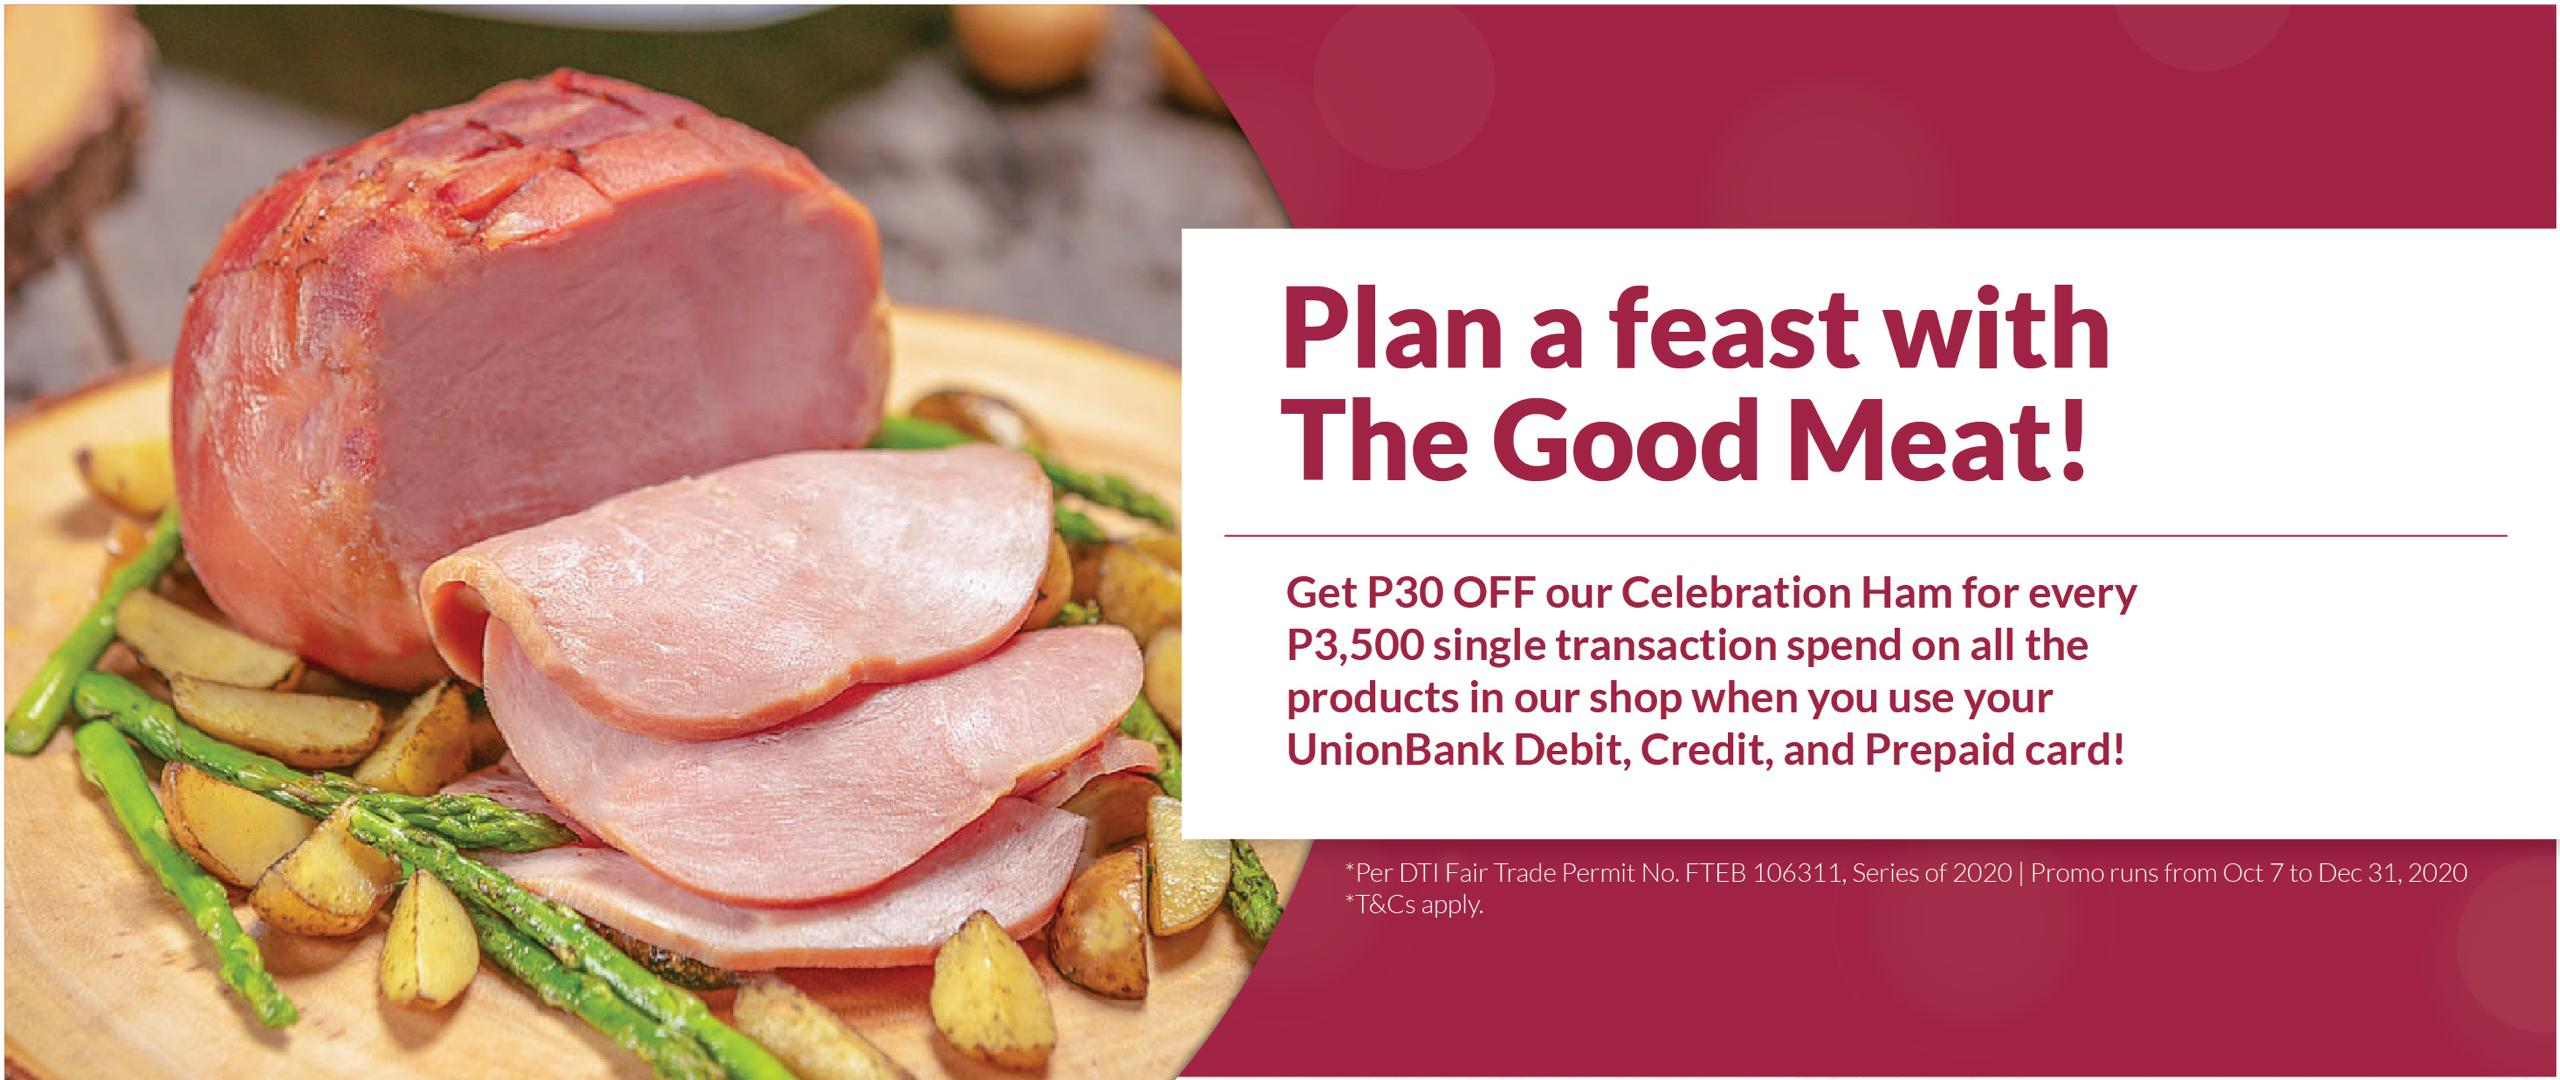 The Good Meat Plan a Feast Promo